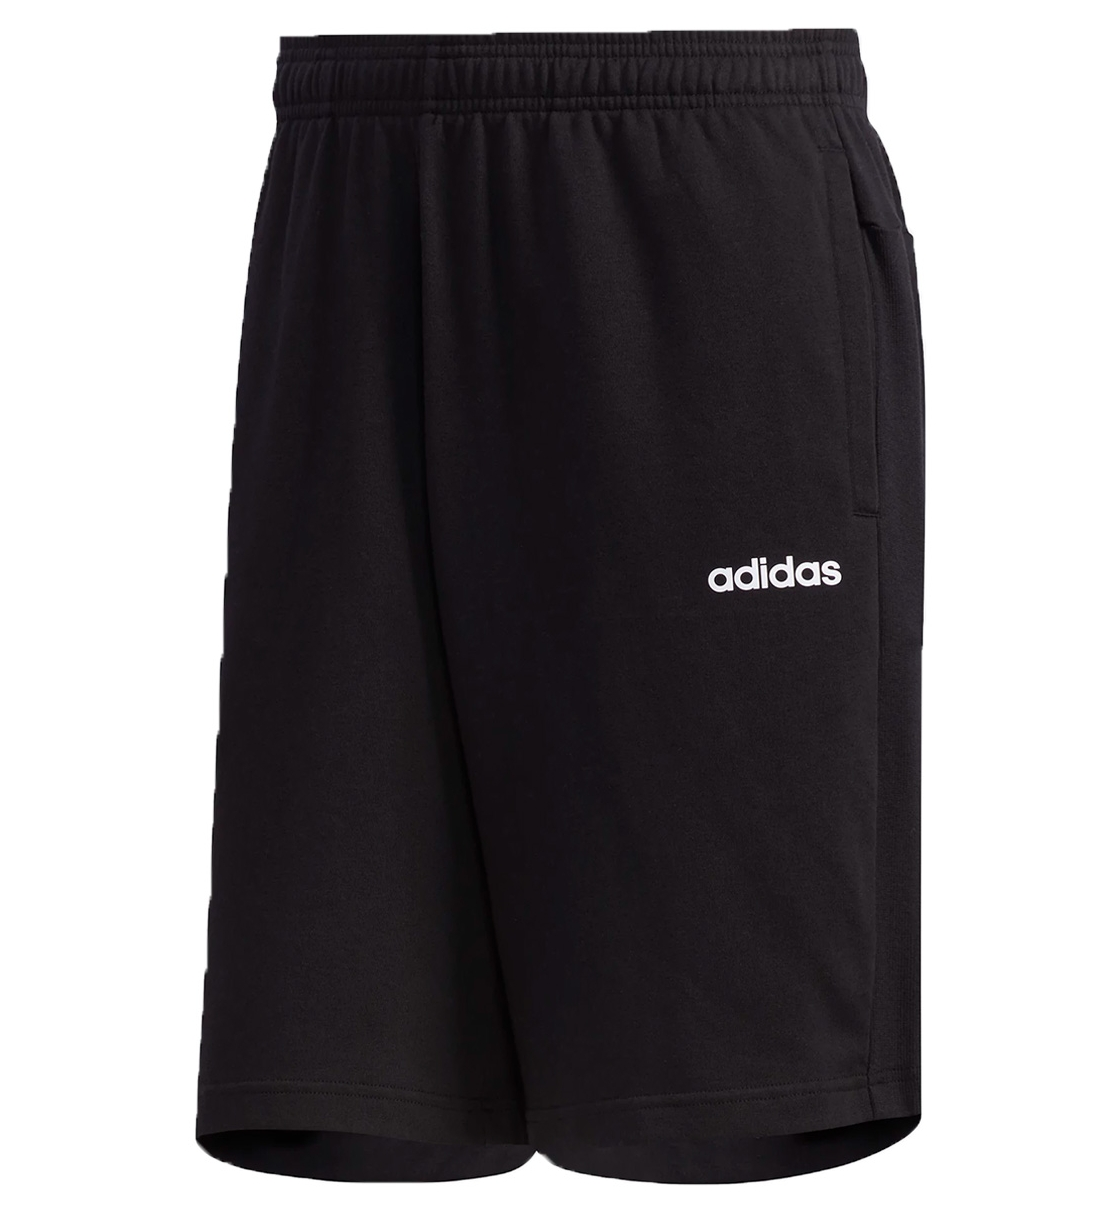 Adidas Ss20 Mens Essential Material Mix Short